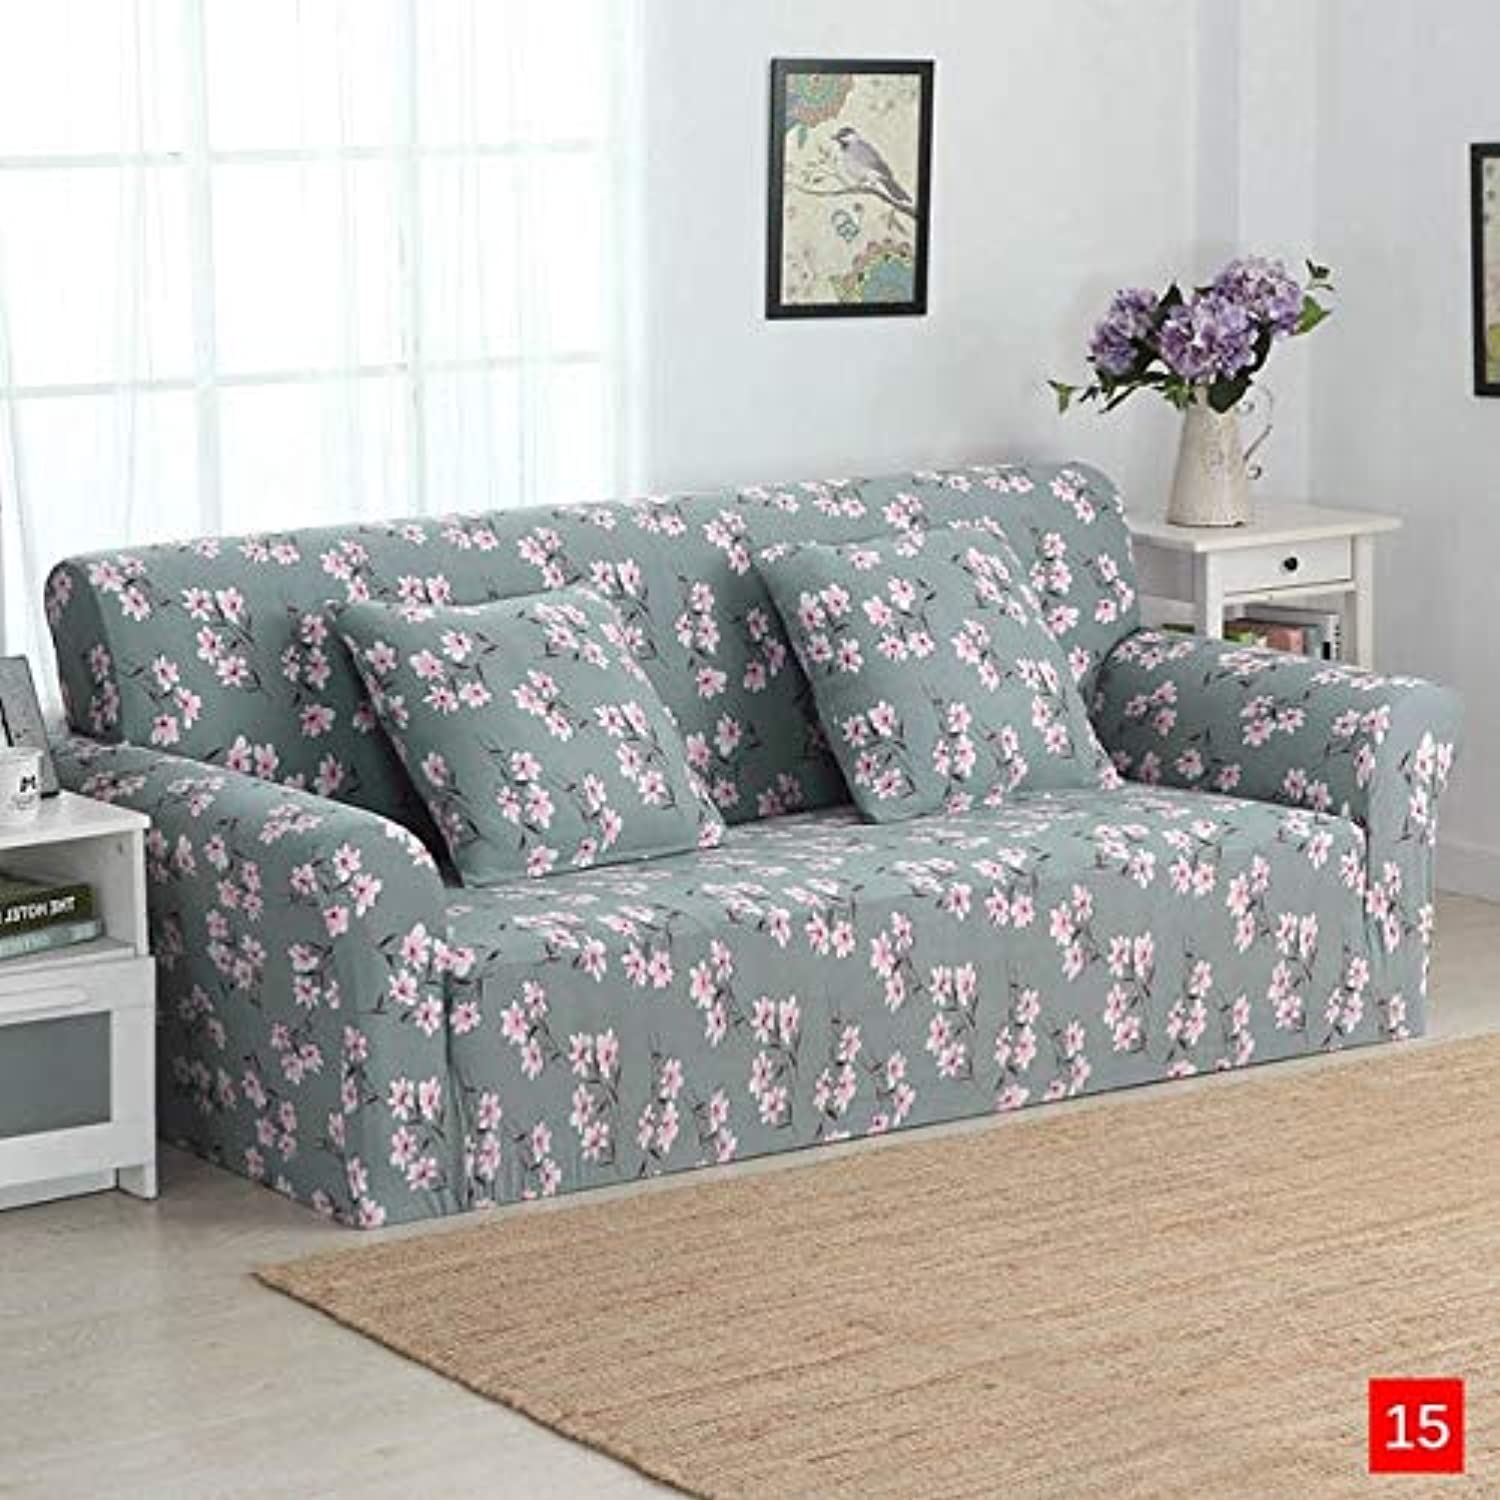 Three Seater Sofa Cover for Living Room Tight Universal Sofa Cover Slipcover Stretch Couch Cover on The Corner Sofa Blanket   15, Single Seater